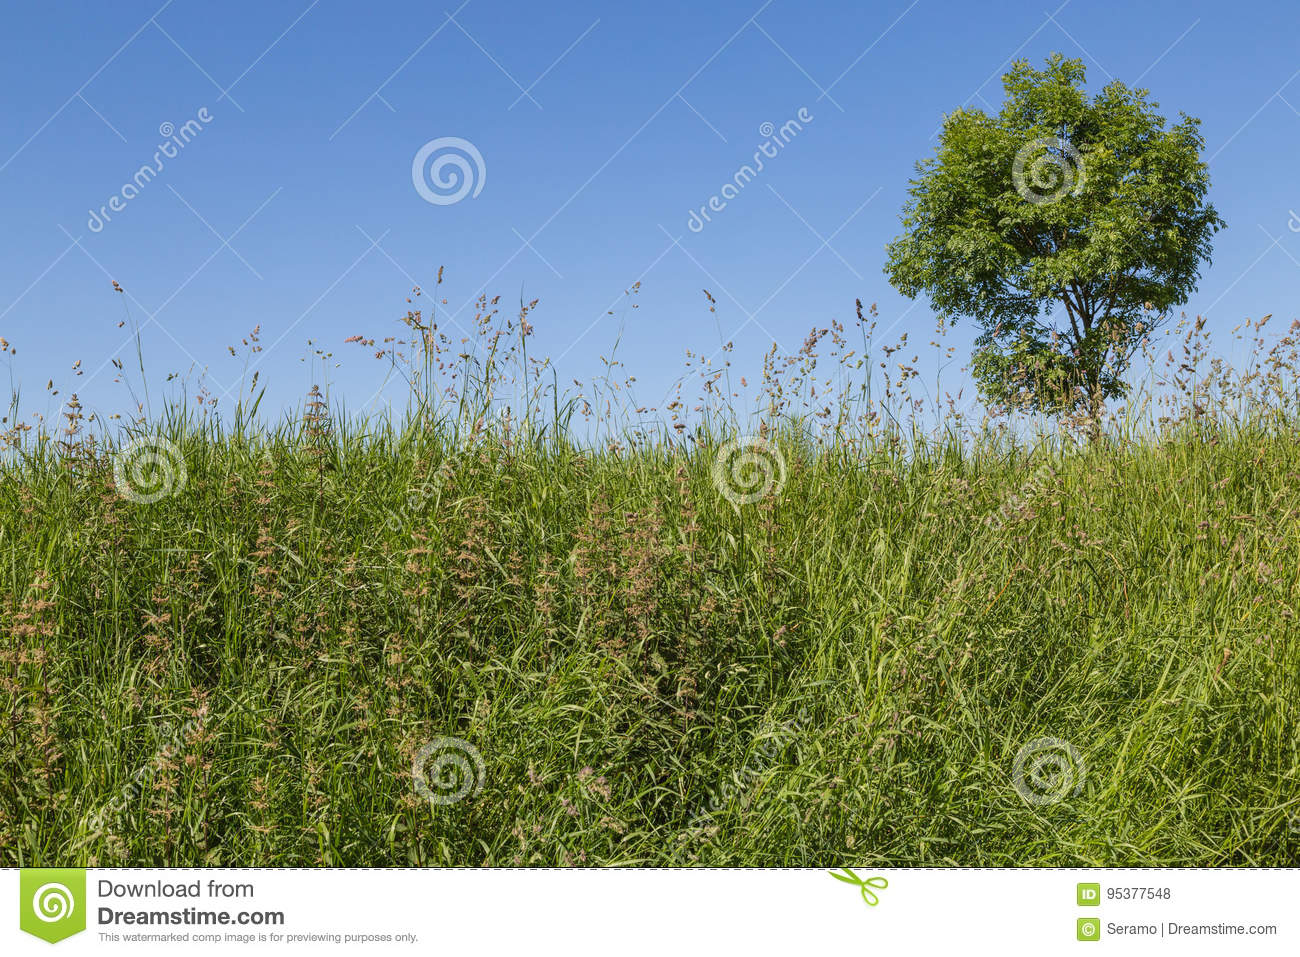 Bluegrass Meadow: Description and Use 22